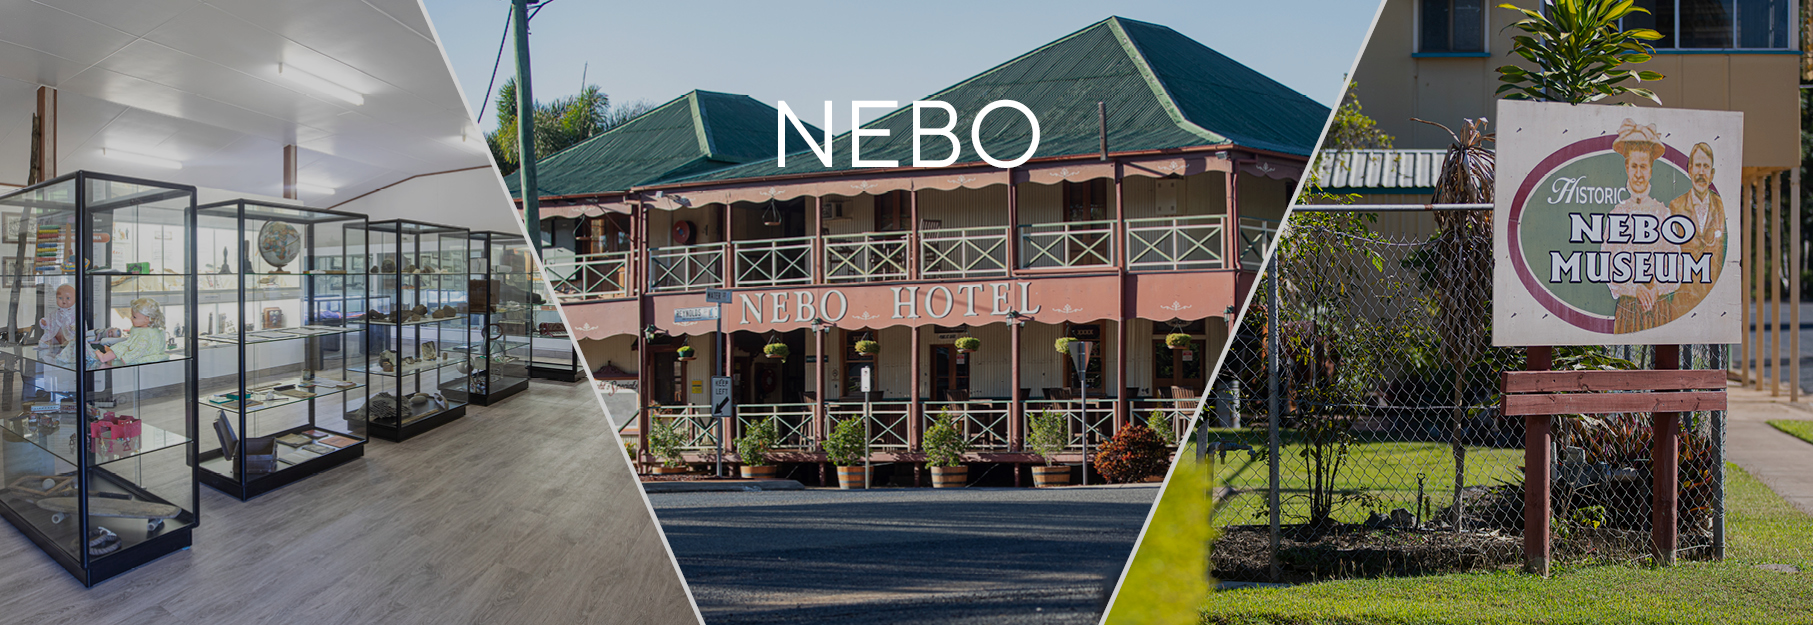 Nebo Page Banner